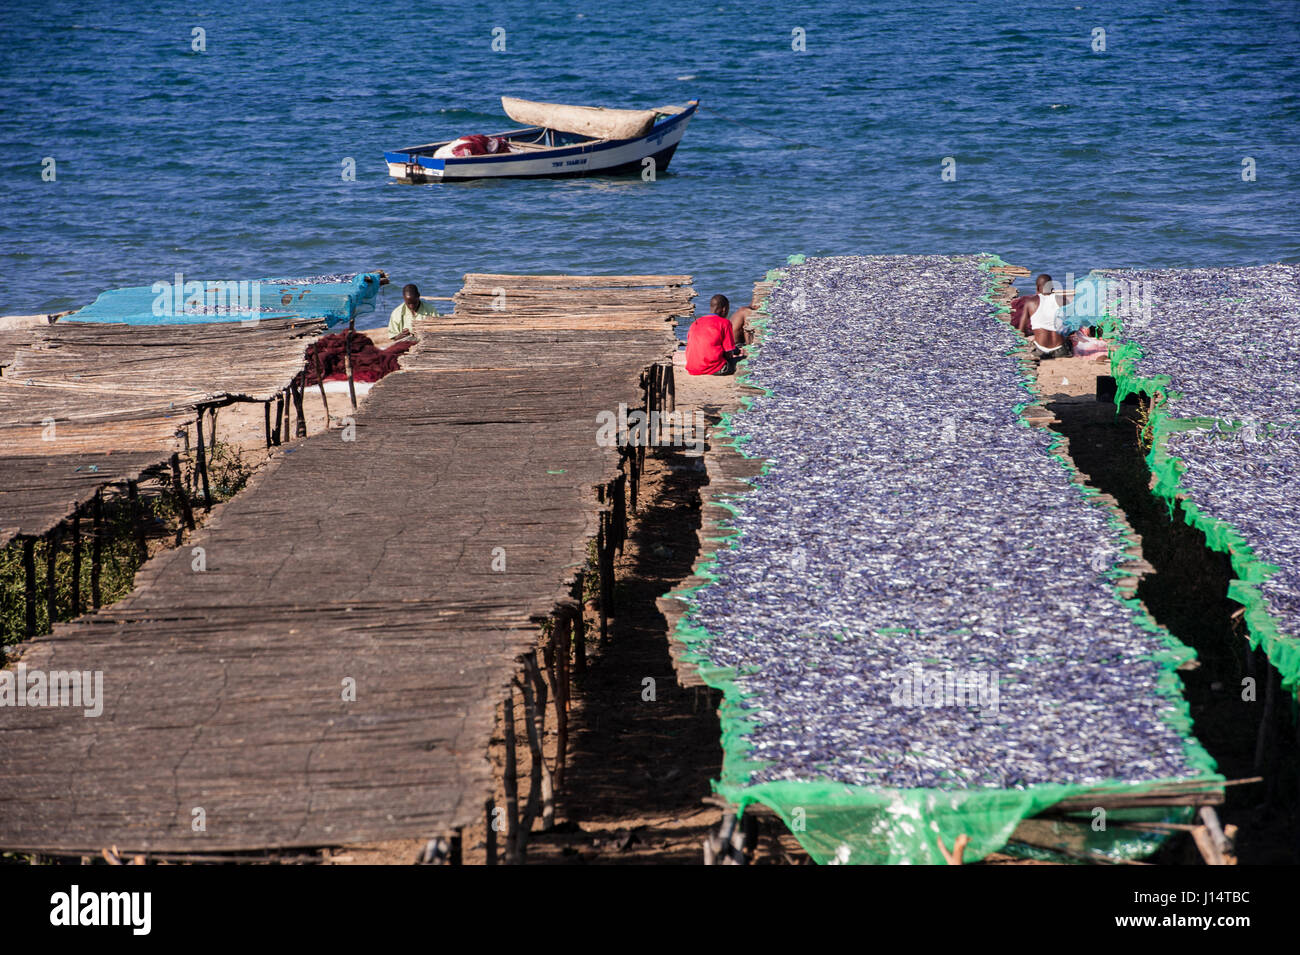 Fish drying on racks on the shore of Lake Malawi - Stock Image